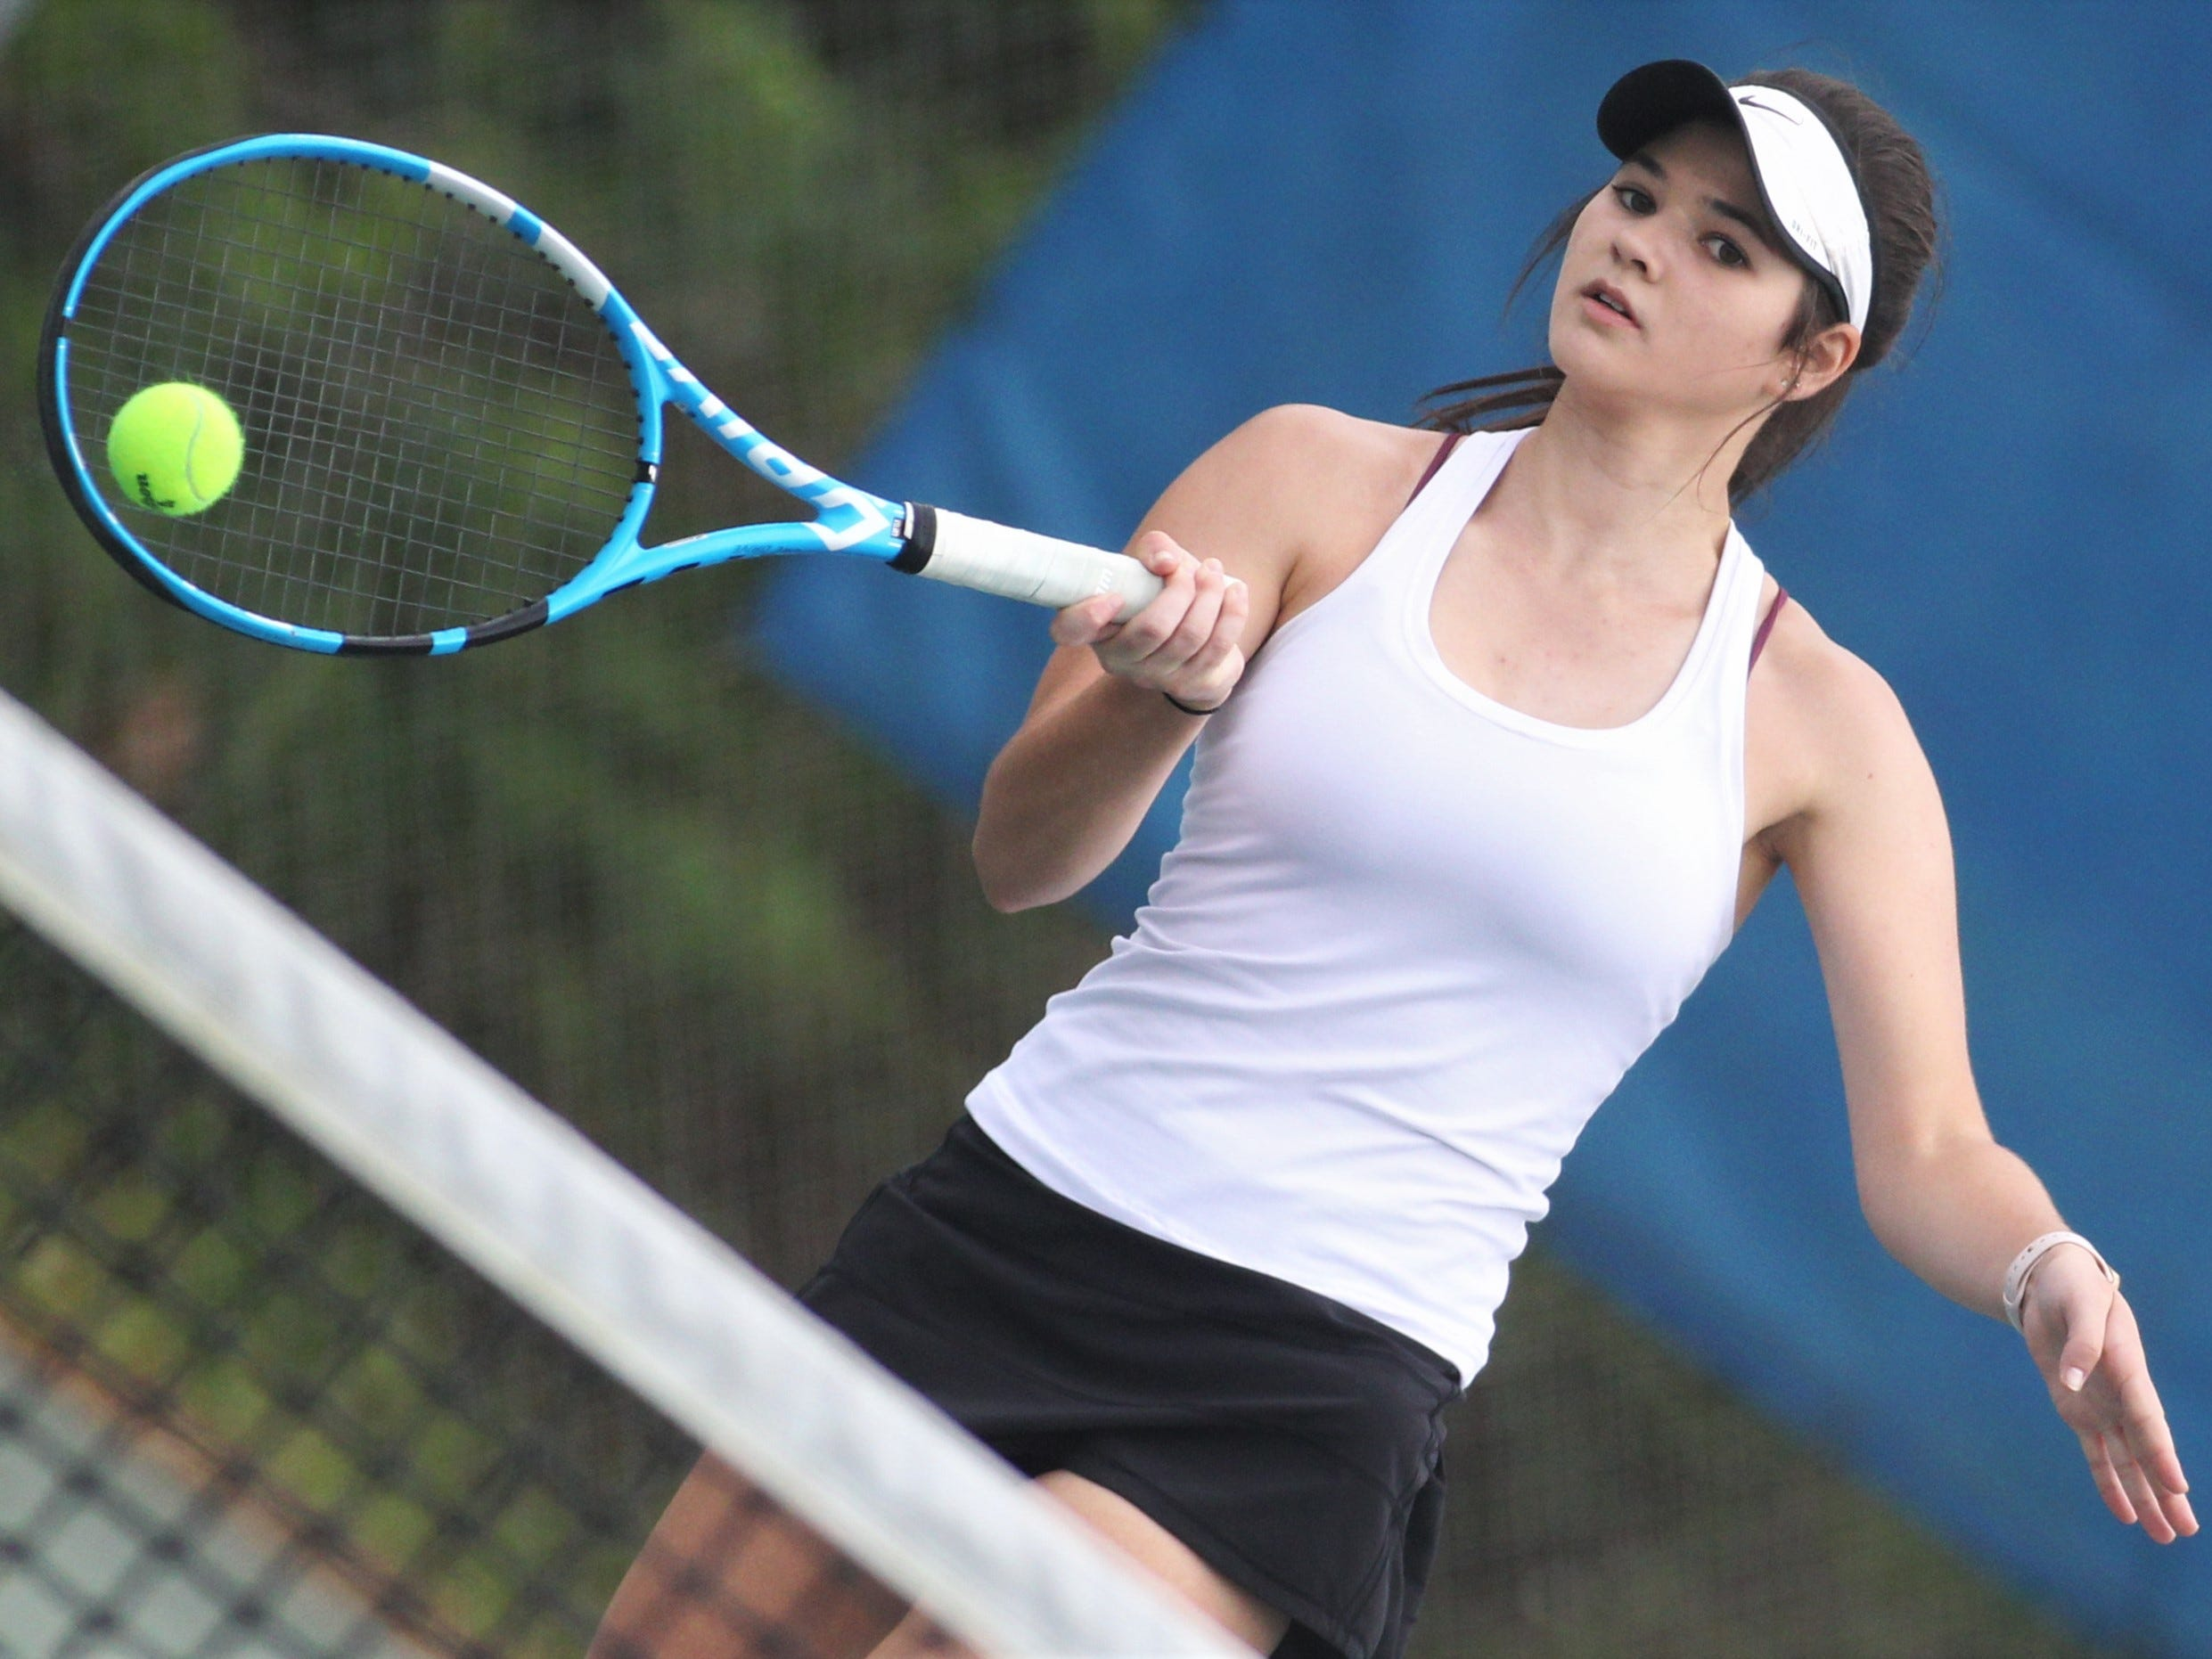 Chiles senior Gracie Wilson hits a forehand during the high school boys and girls city tennis tournament at Tom Brown Park on Thursday, March 14, 2019.